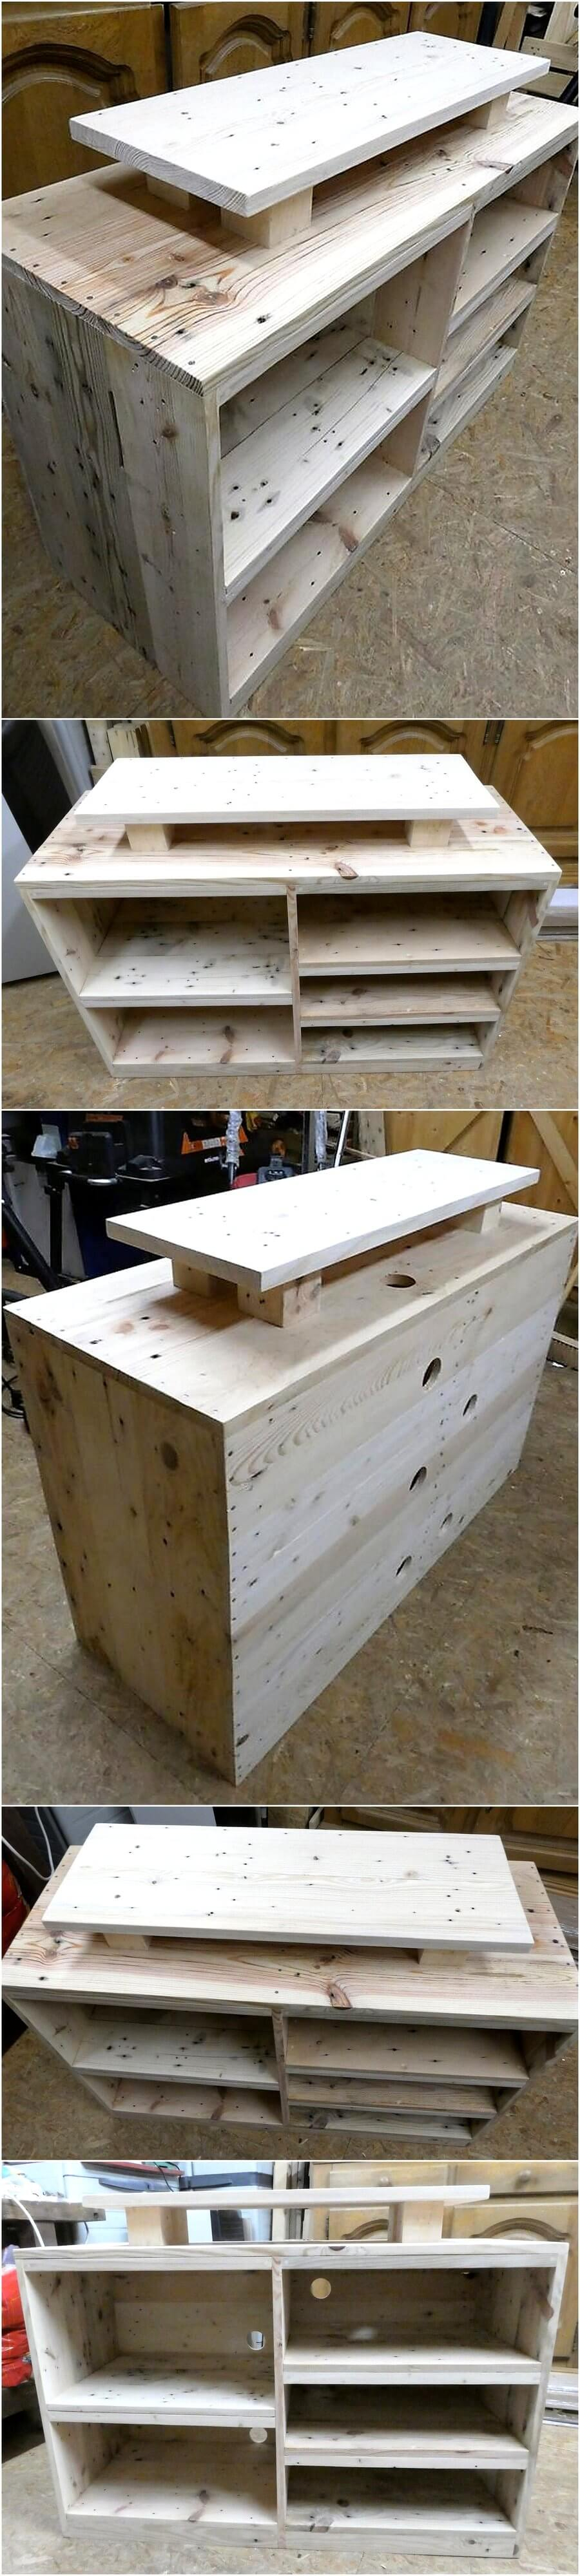 Repurposed Wood Pallets TV Stand Idea